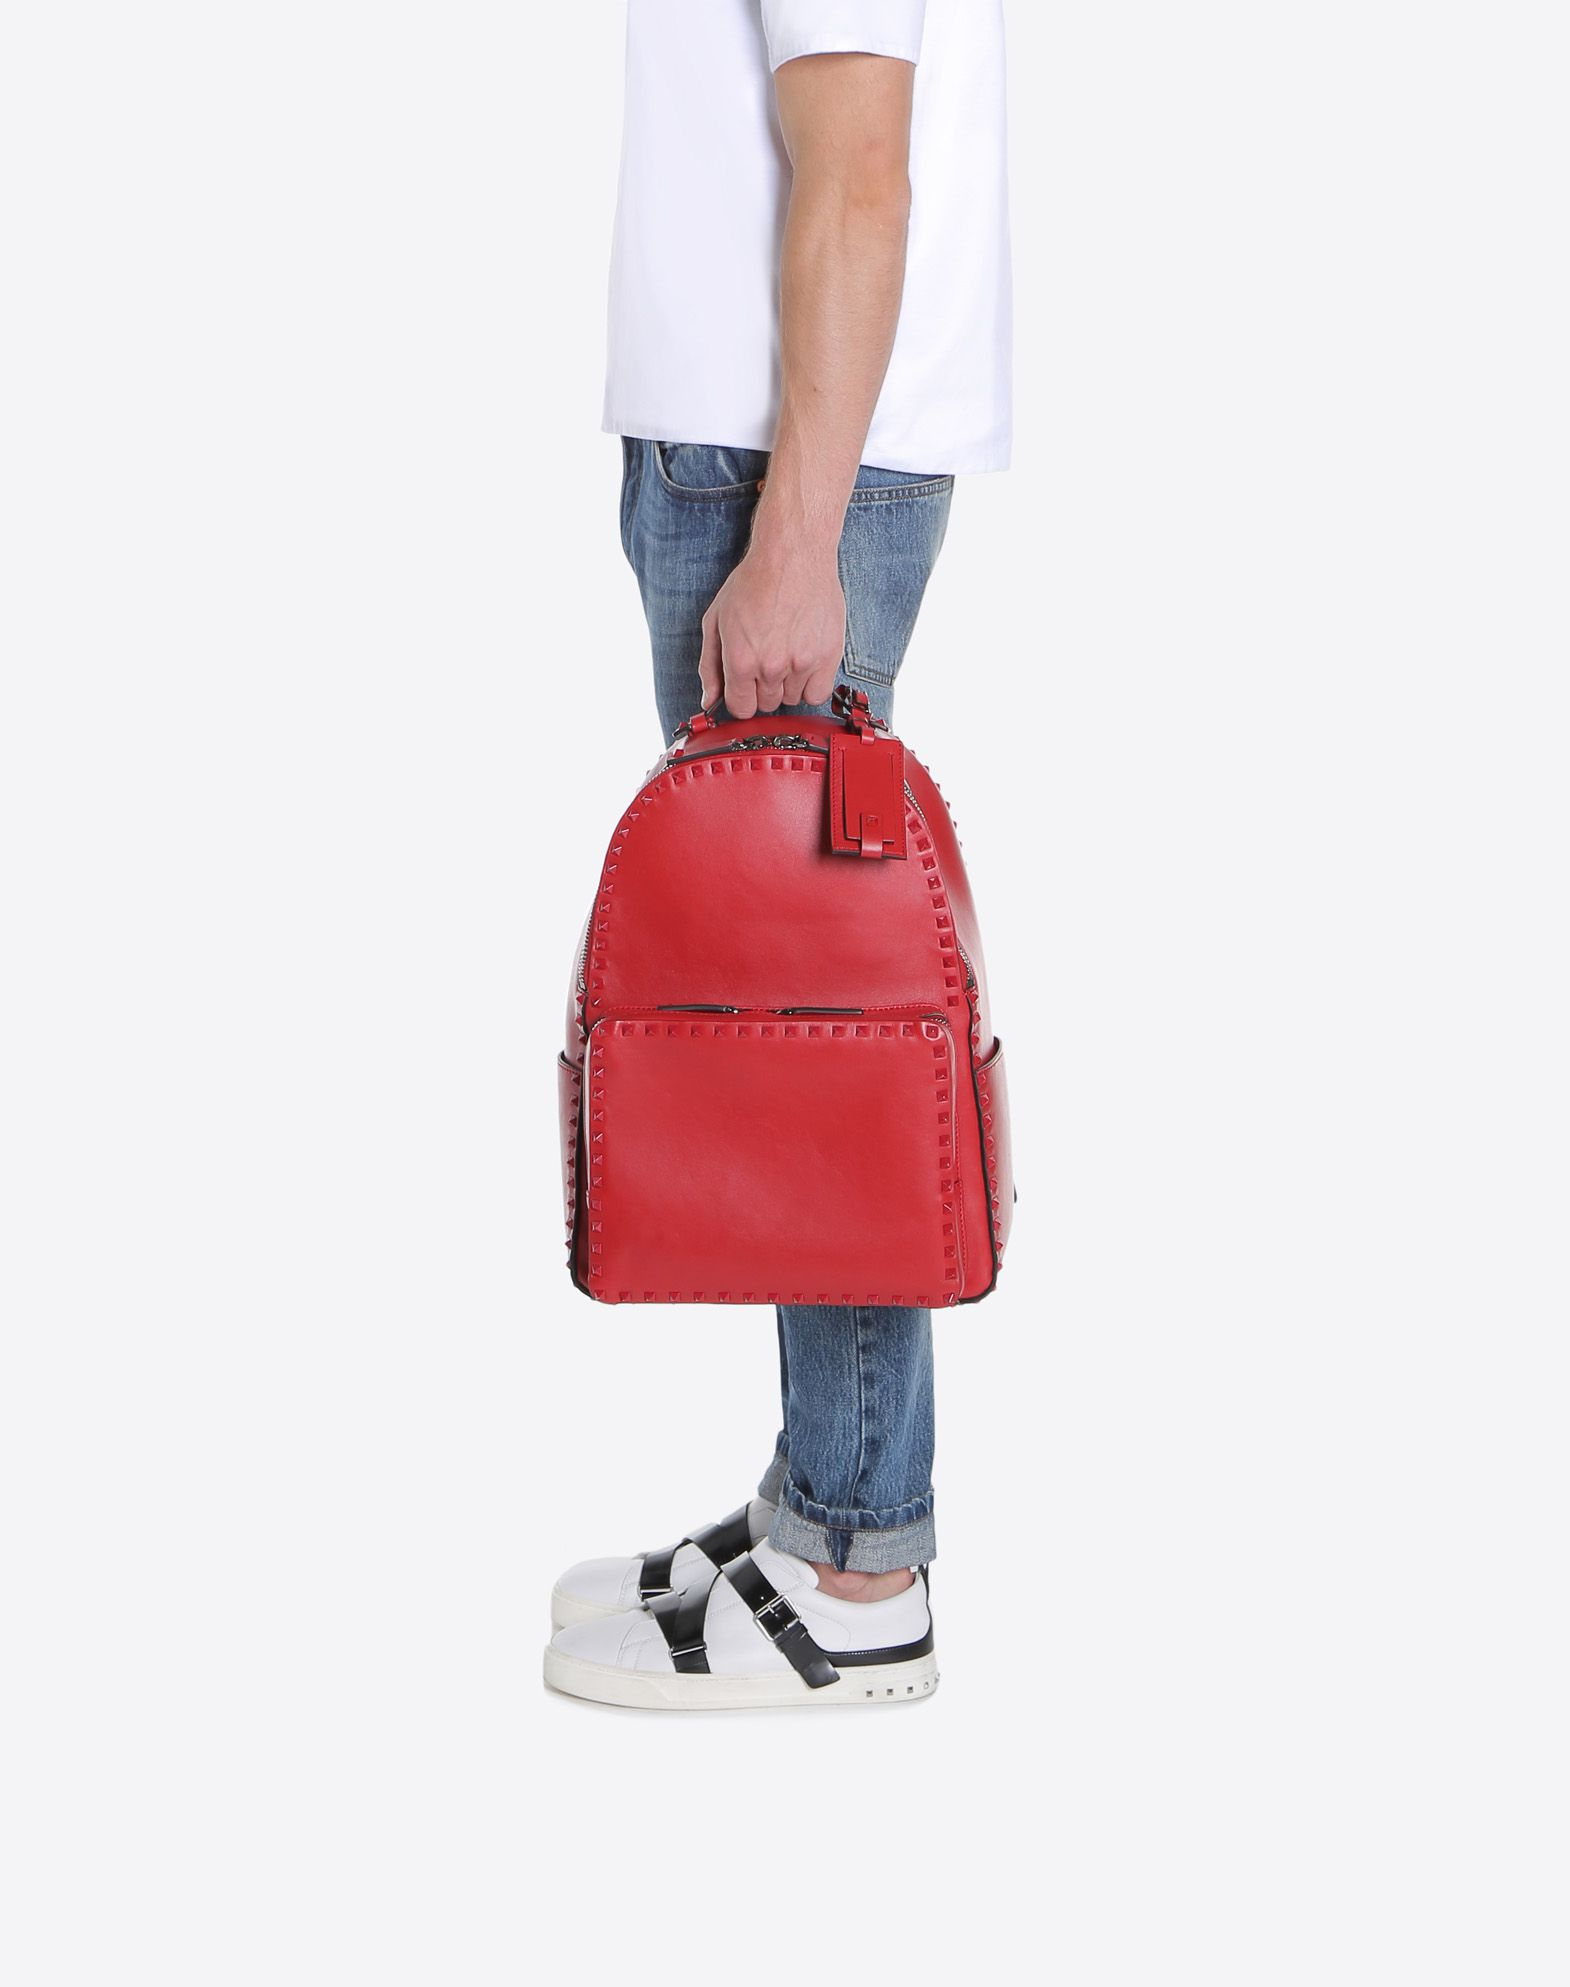 VALENTINO GARAVANI UOMO Rockstud Untitled Rosso Backpack Backpack U a